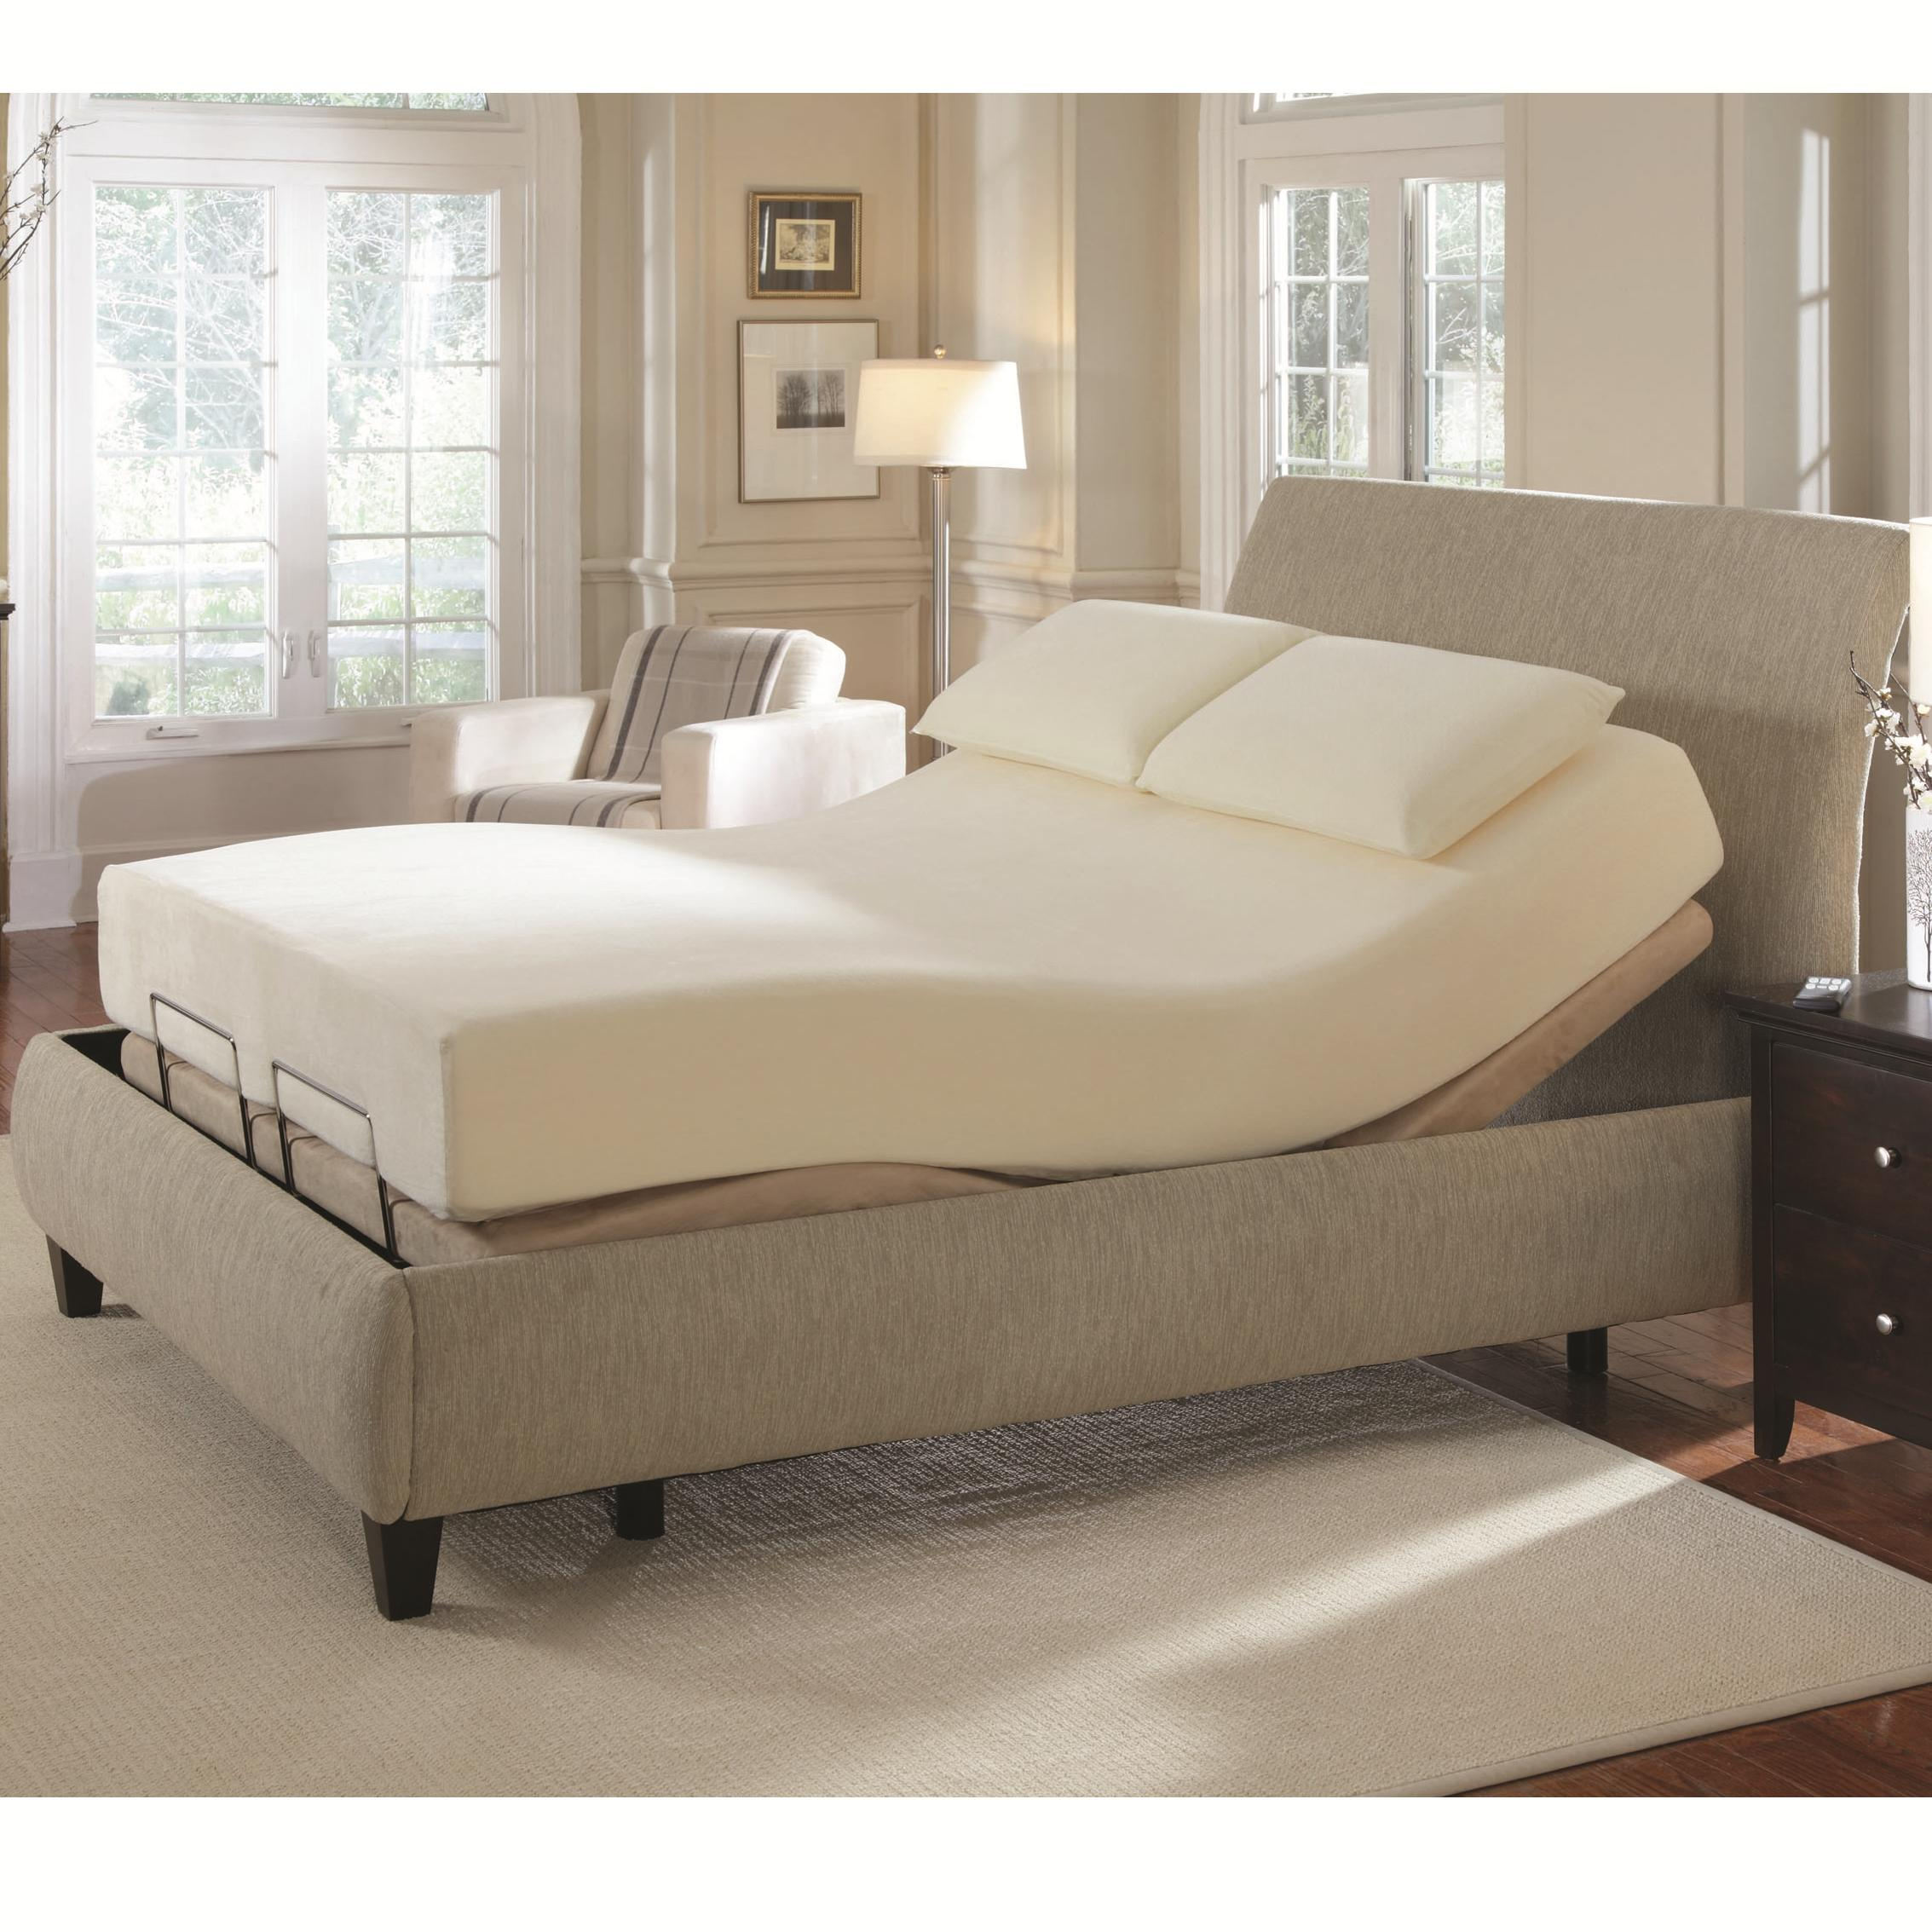 Coaster Coaster Foundations King Premier Bedding Pinnacle Adj Base - Item Number: 300130KEM